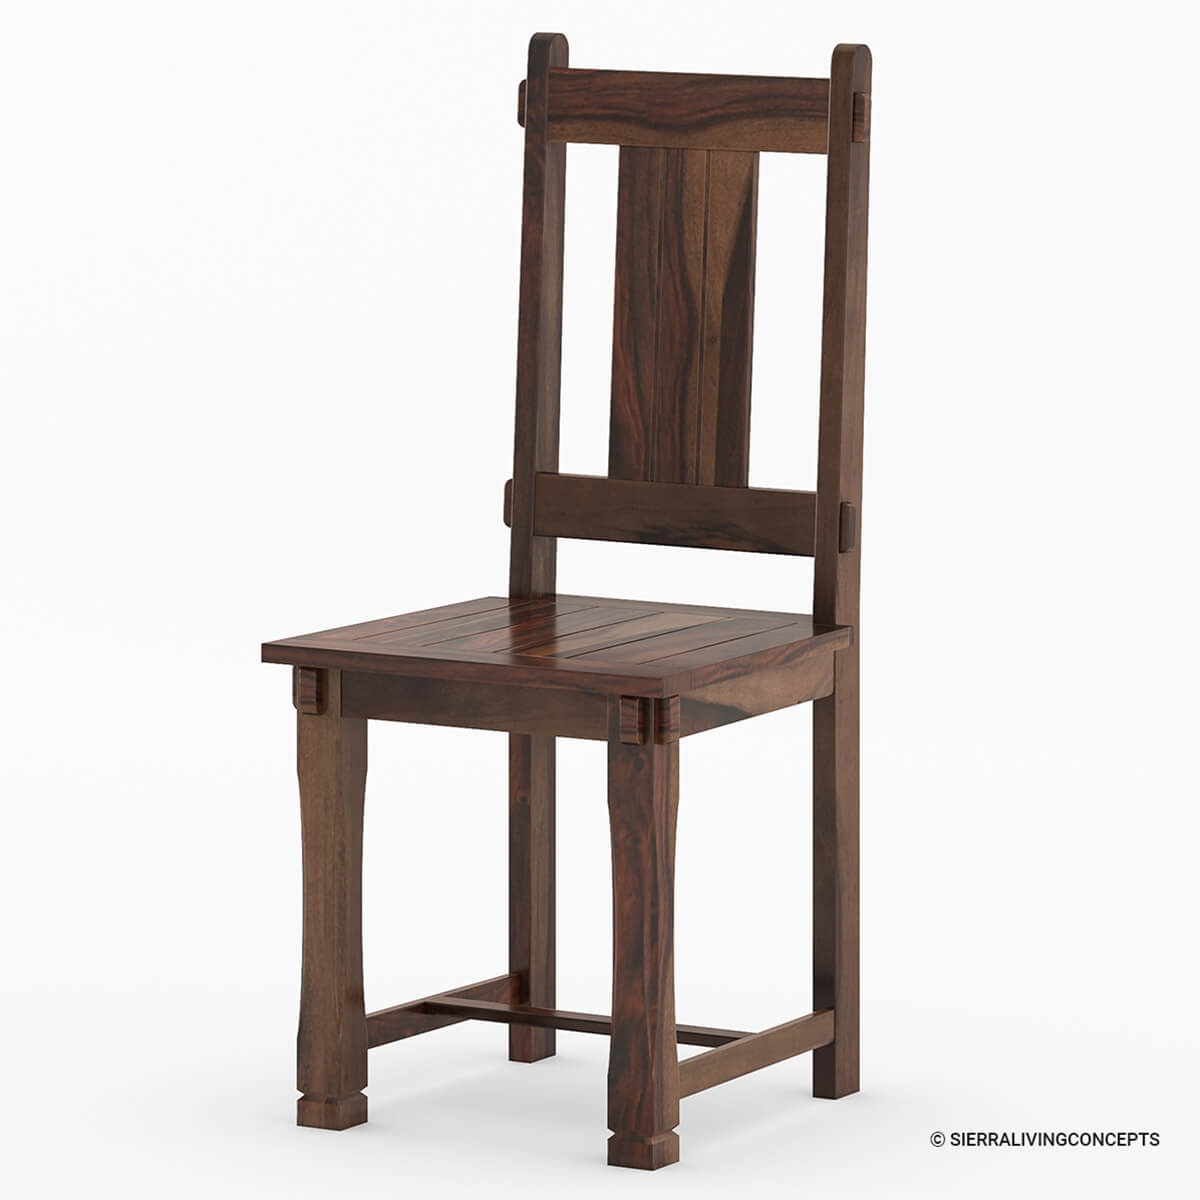 wooden hand chair bali aeron height adjustment not working richmond solid wood carved dining